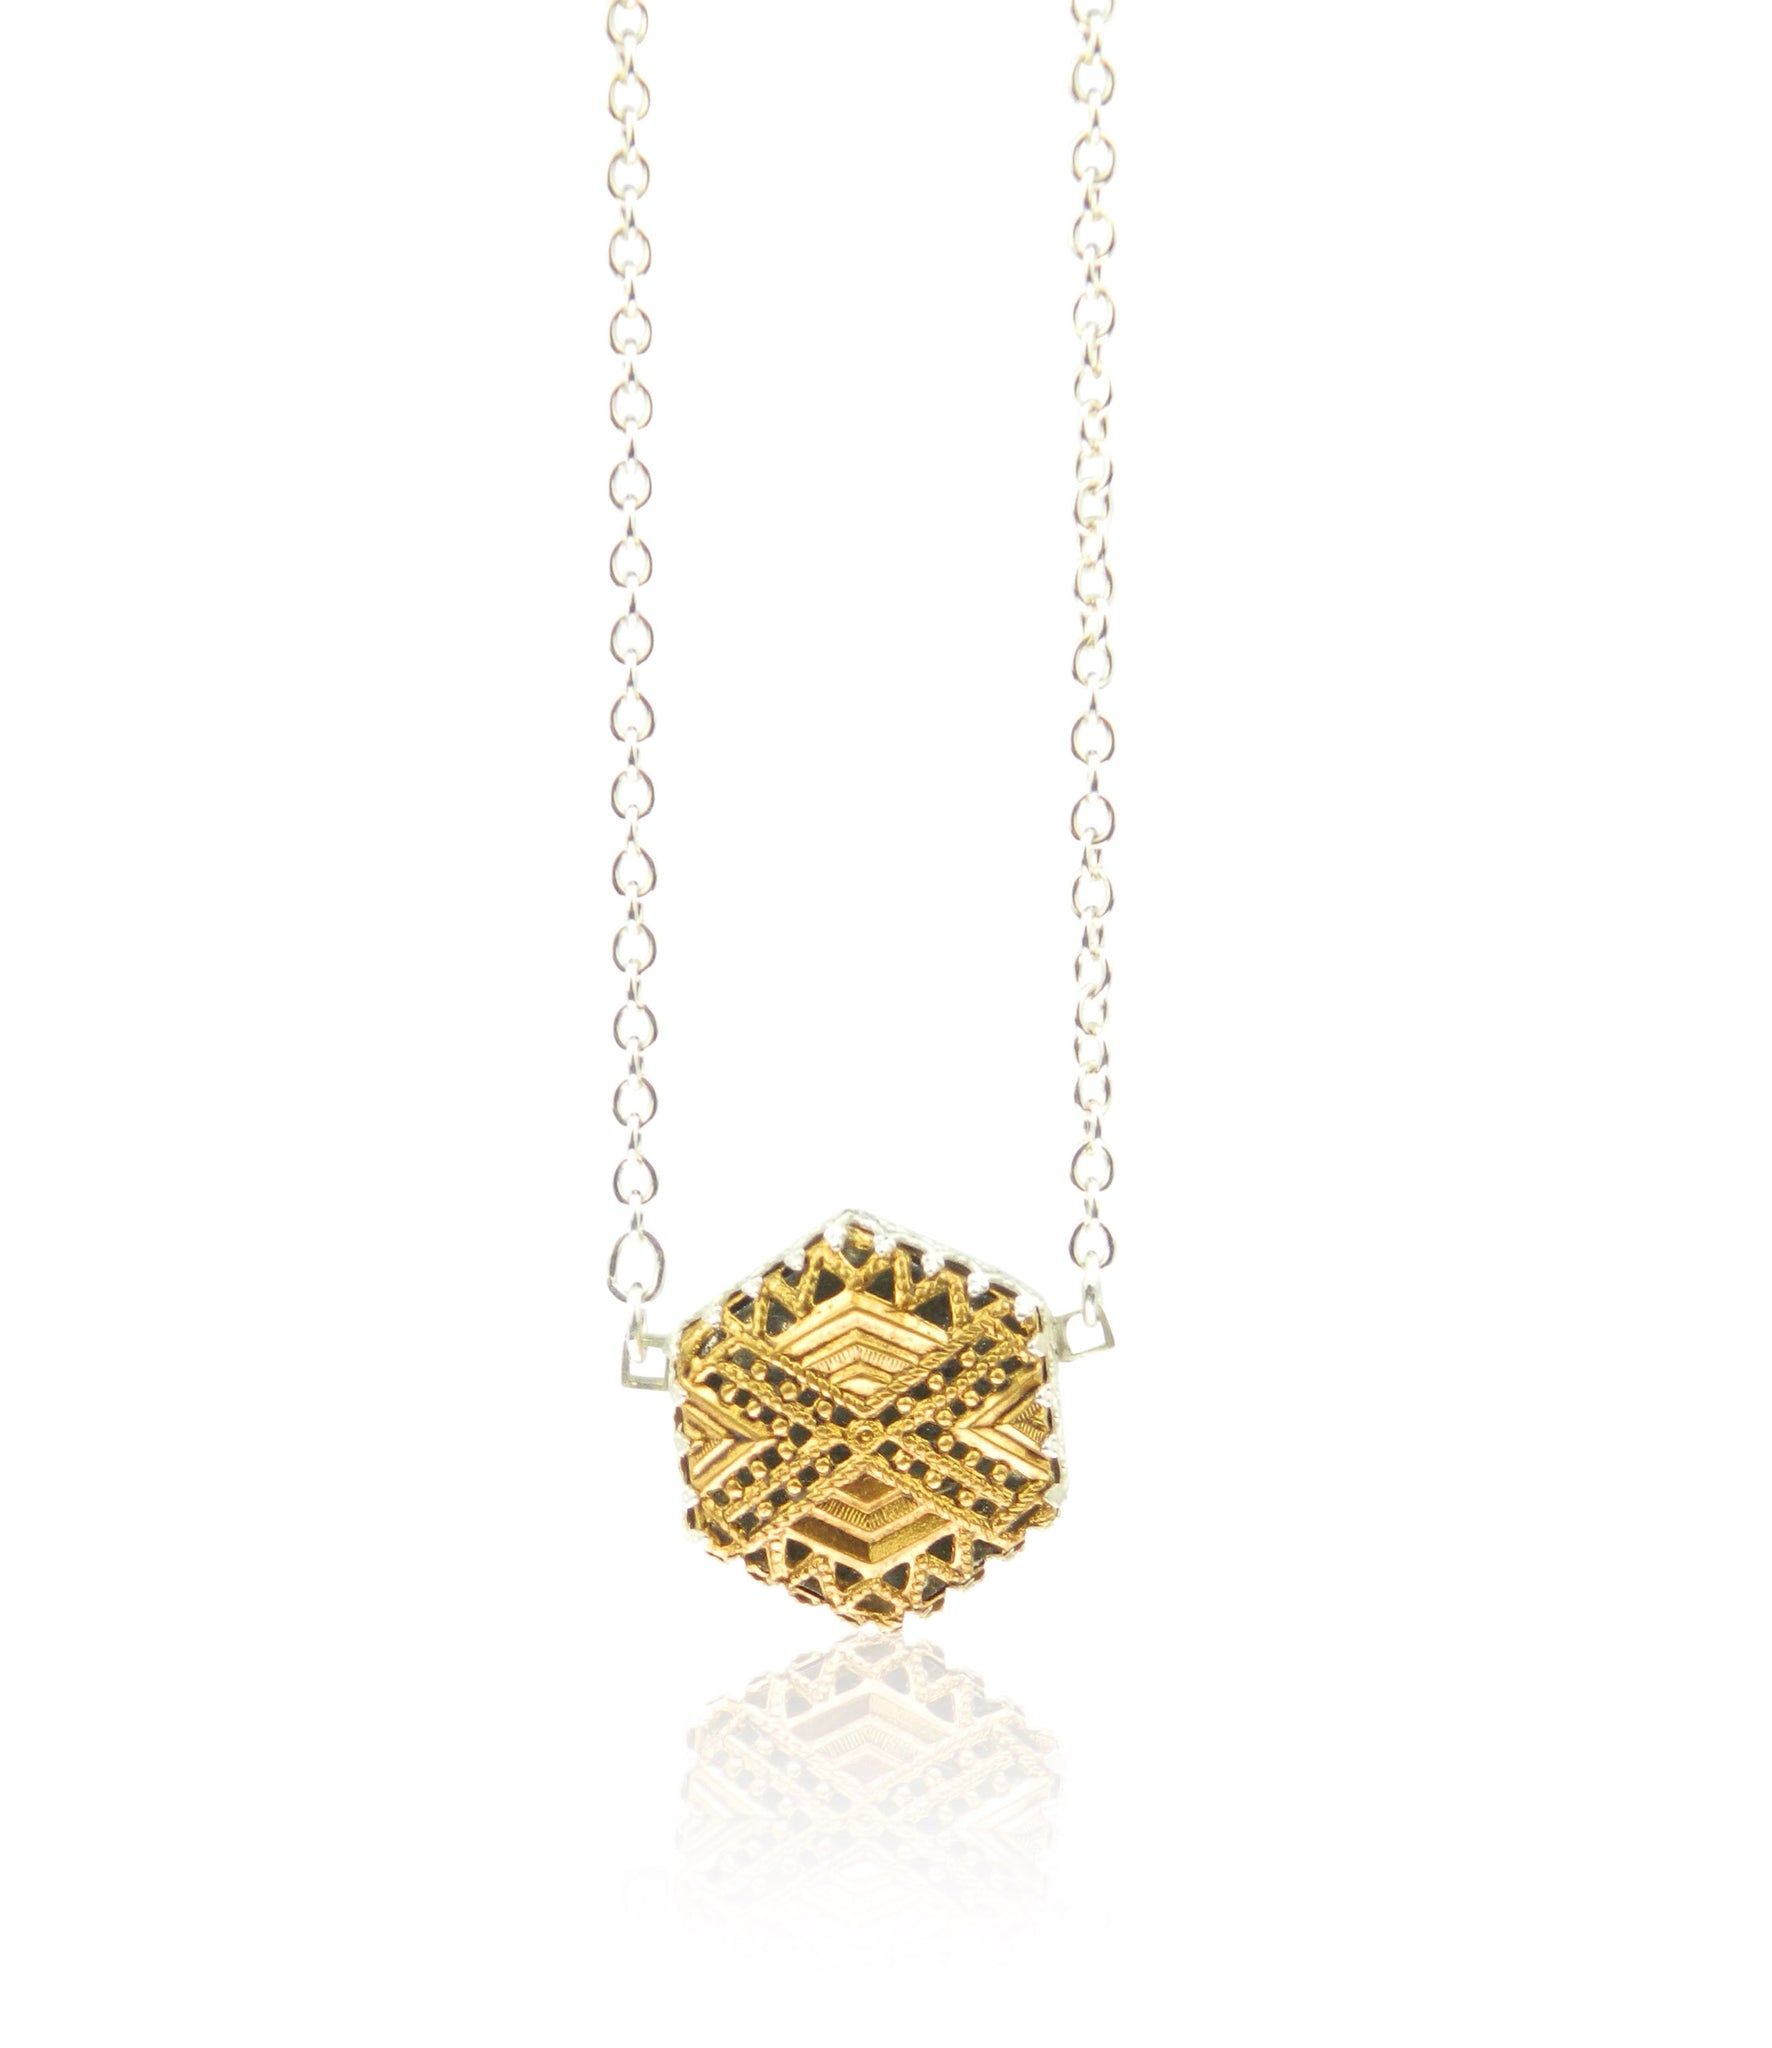 Hexagonal filigree pendant and chain